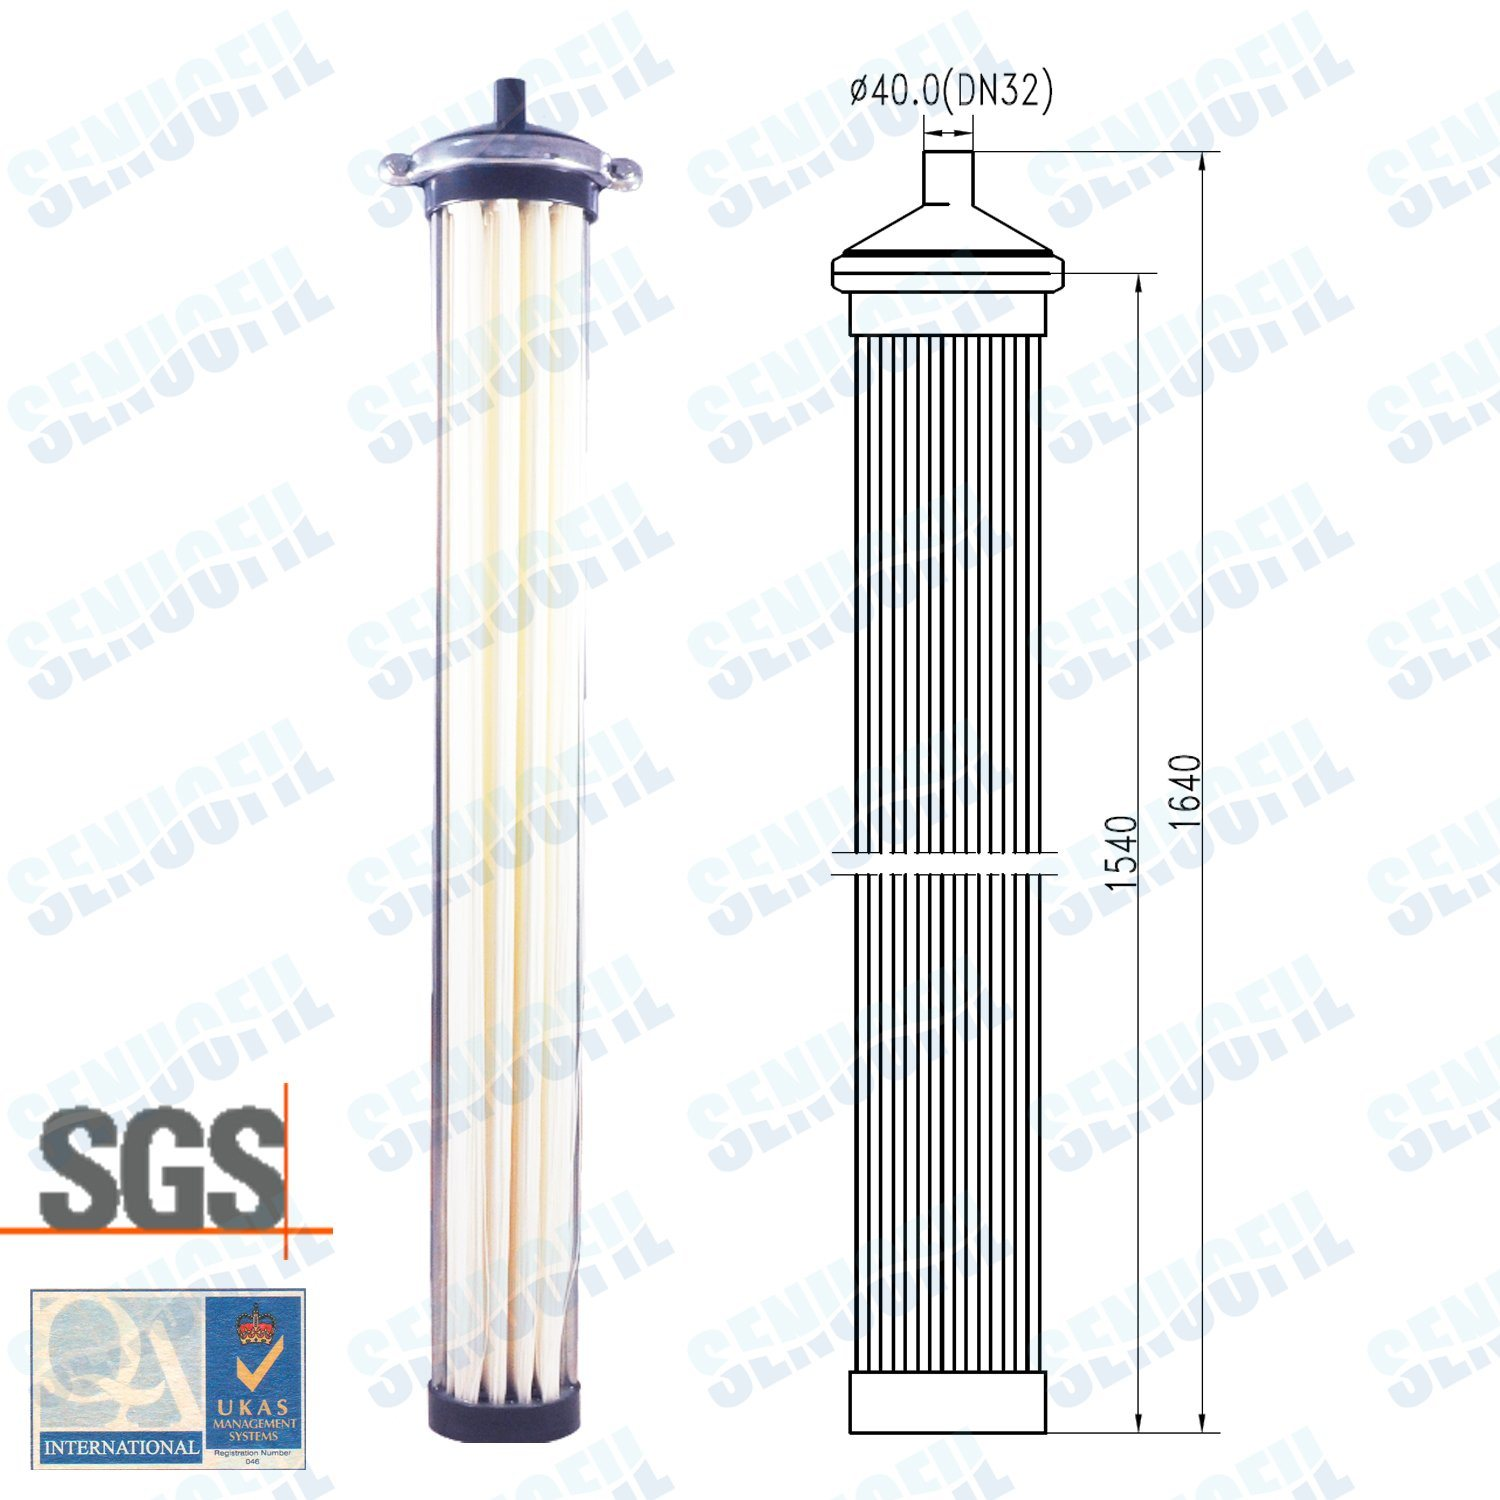 Senuofil Submerged Columnar Mbr Membrane Module for Water Treatment